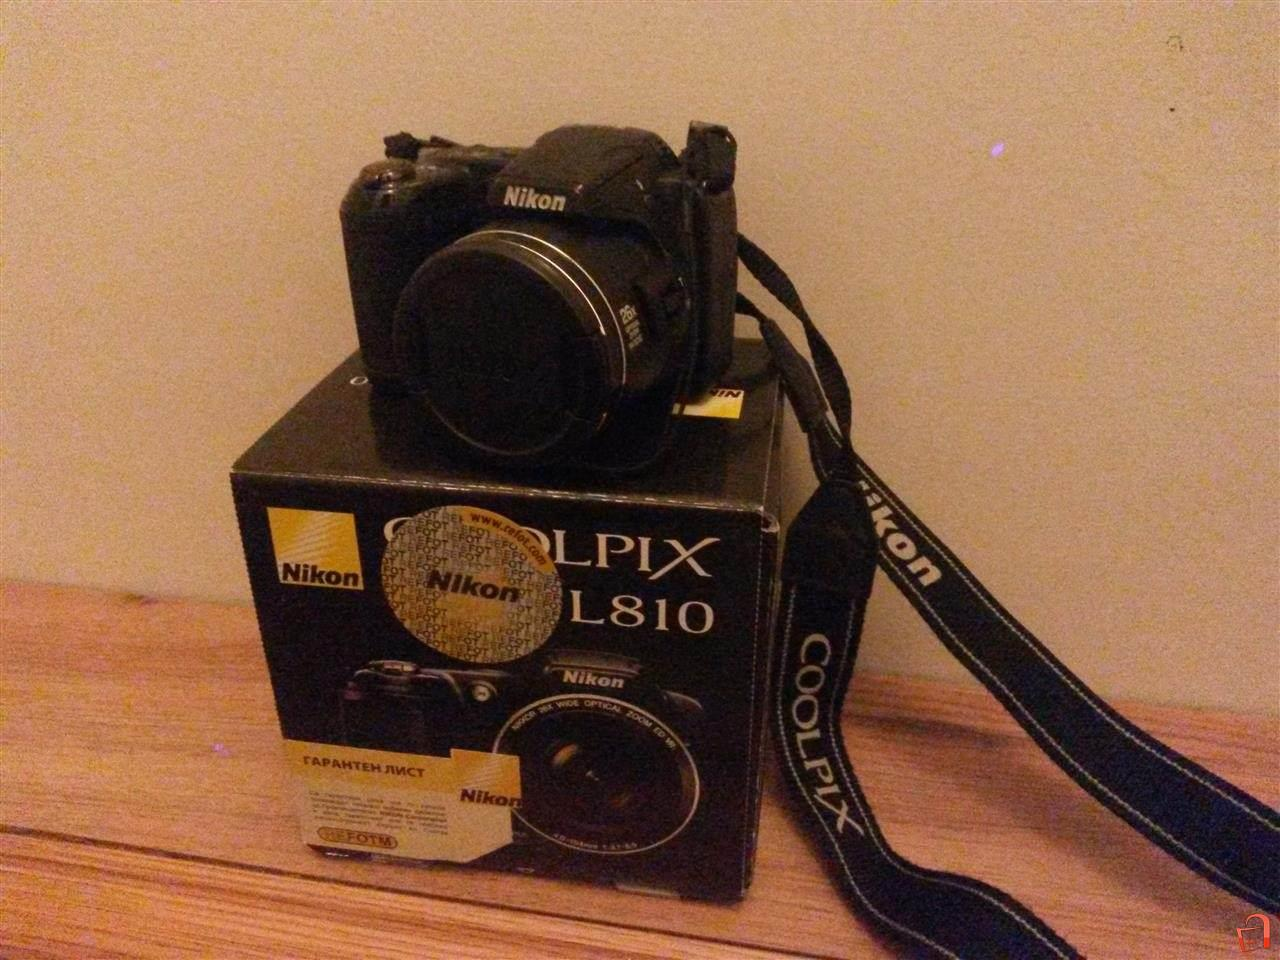 Ad Nikon Coolpix L810 For Sale Skopje Aerodrom Electronics Tv Dvd Satellite And Photography Cameras Accessories